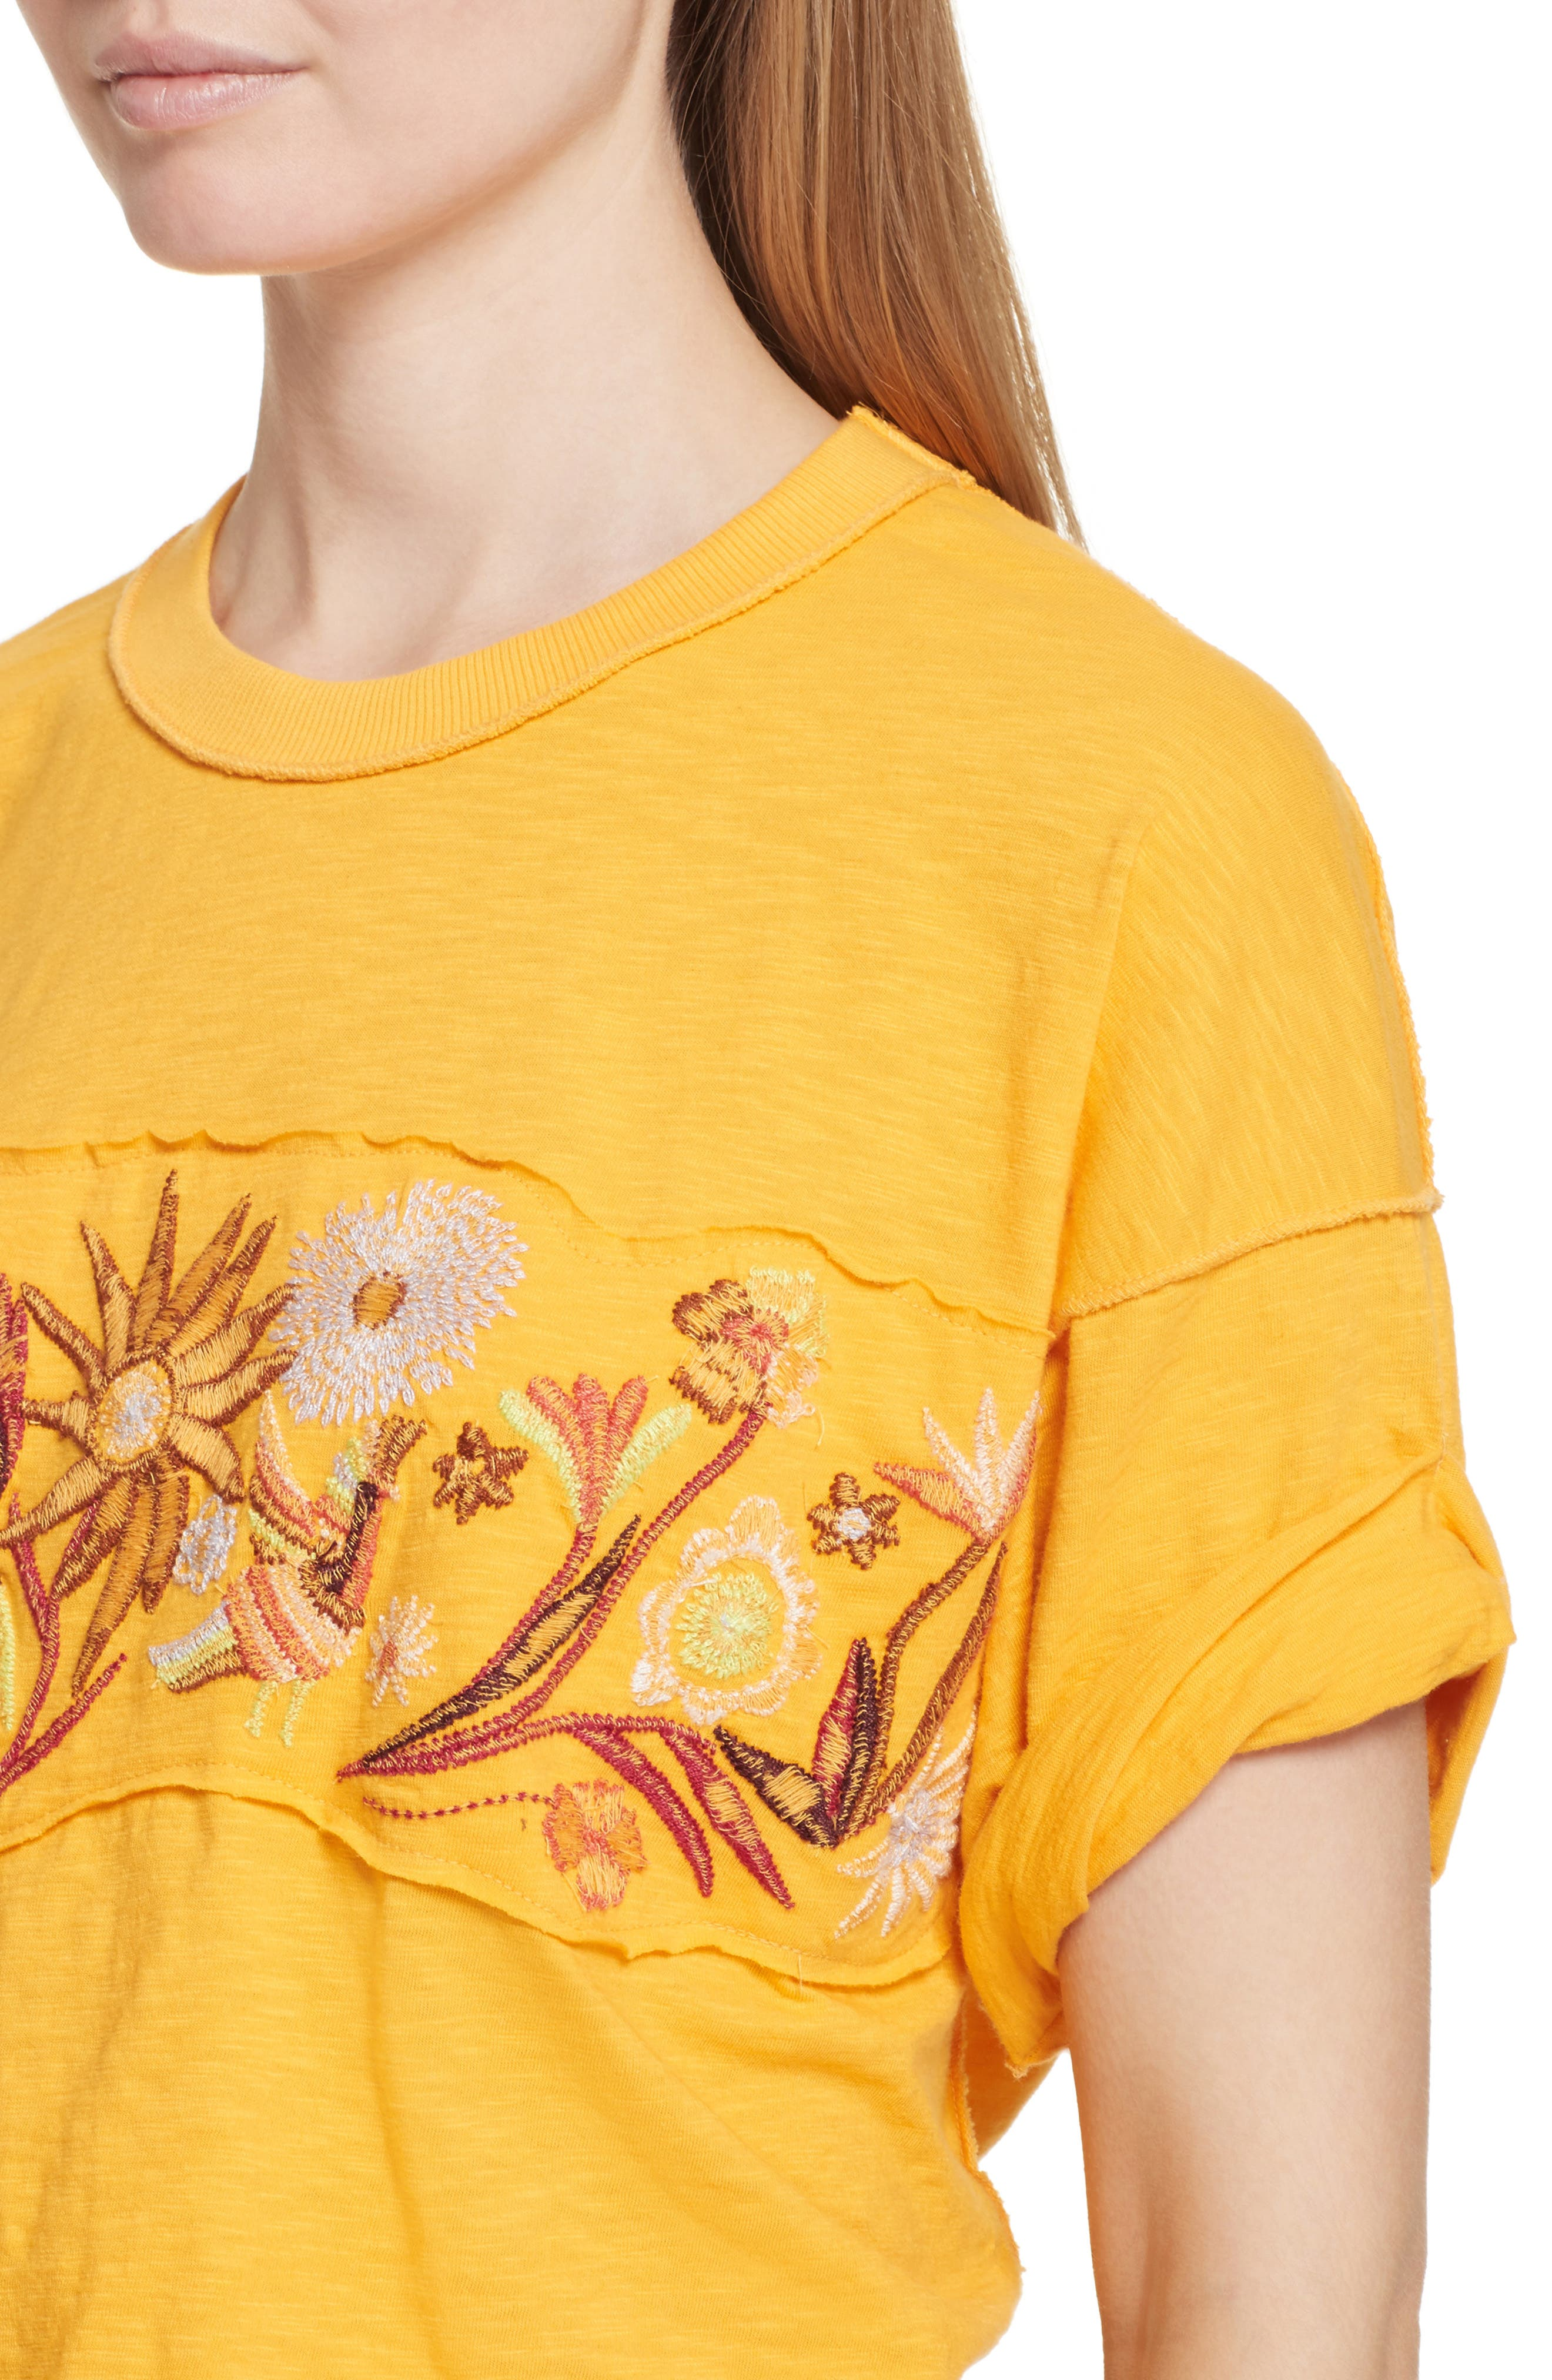 Garden Time Embroidered Tee,                             Alternate thumbnail 4, color,                             700